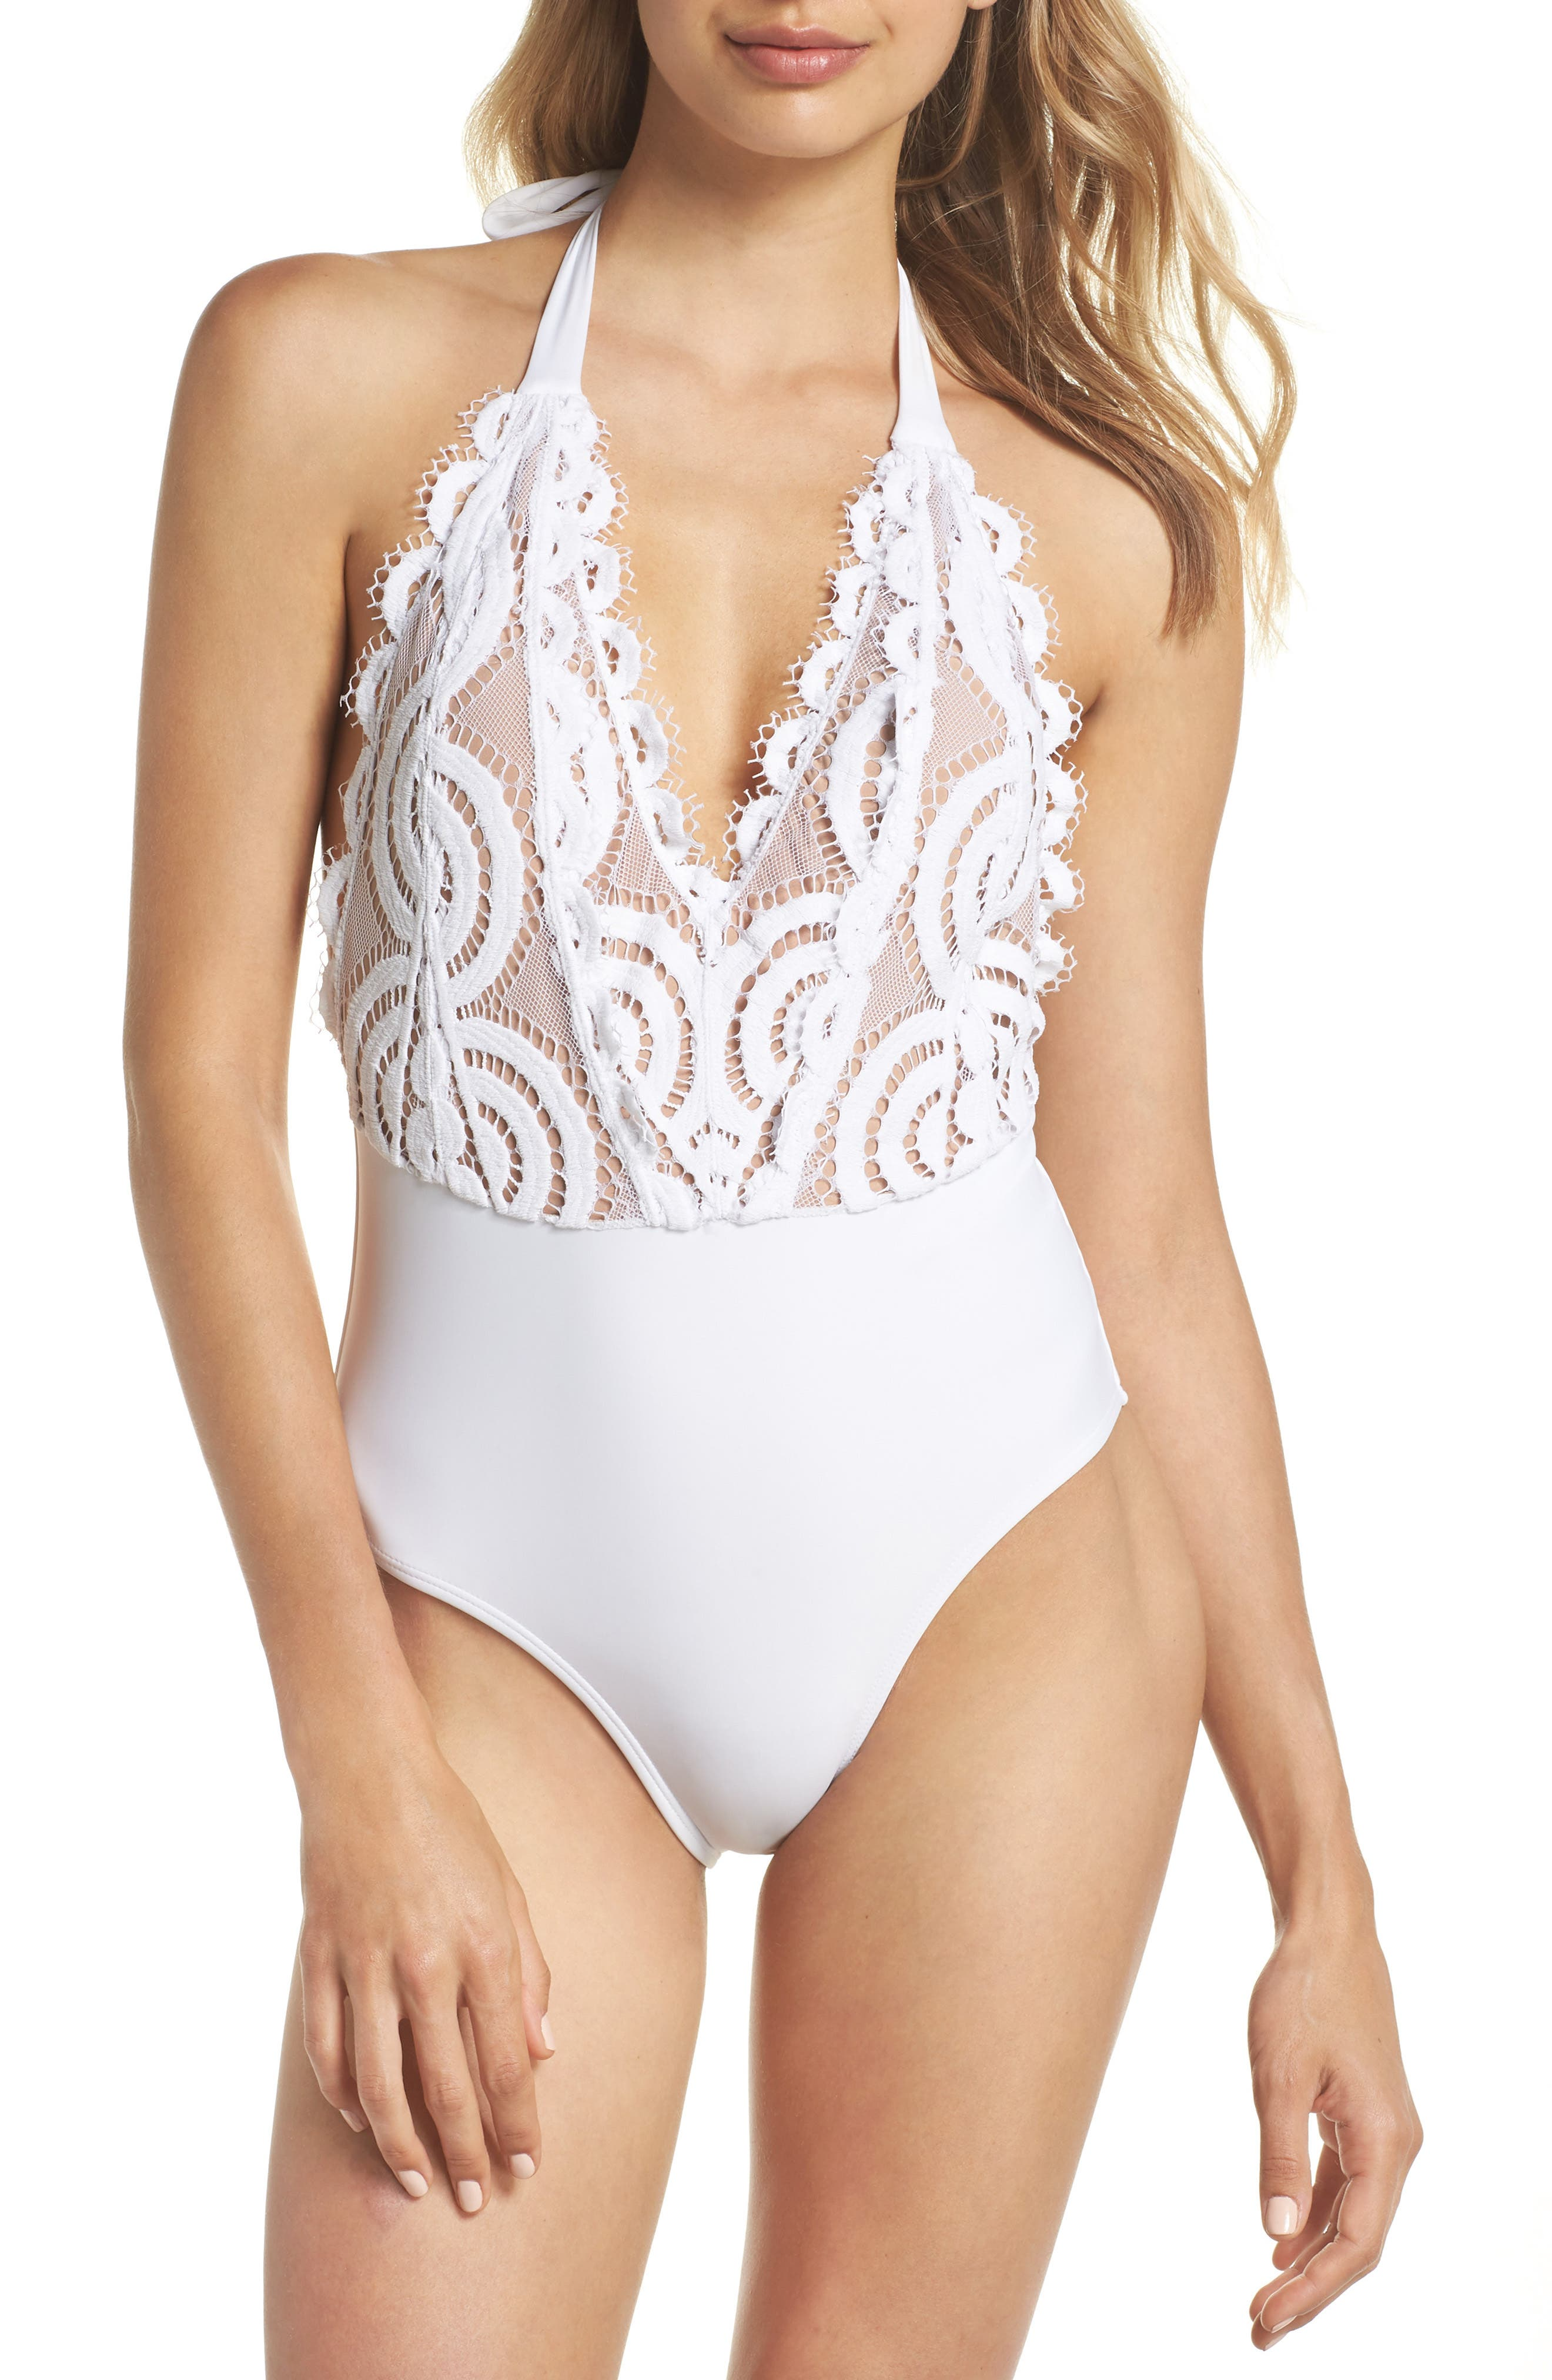 PilyQ Lace Halter One-Piece Swimsuit